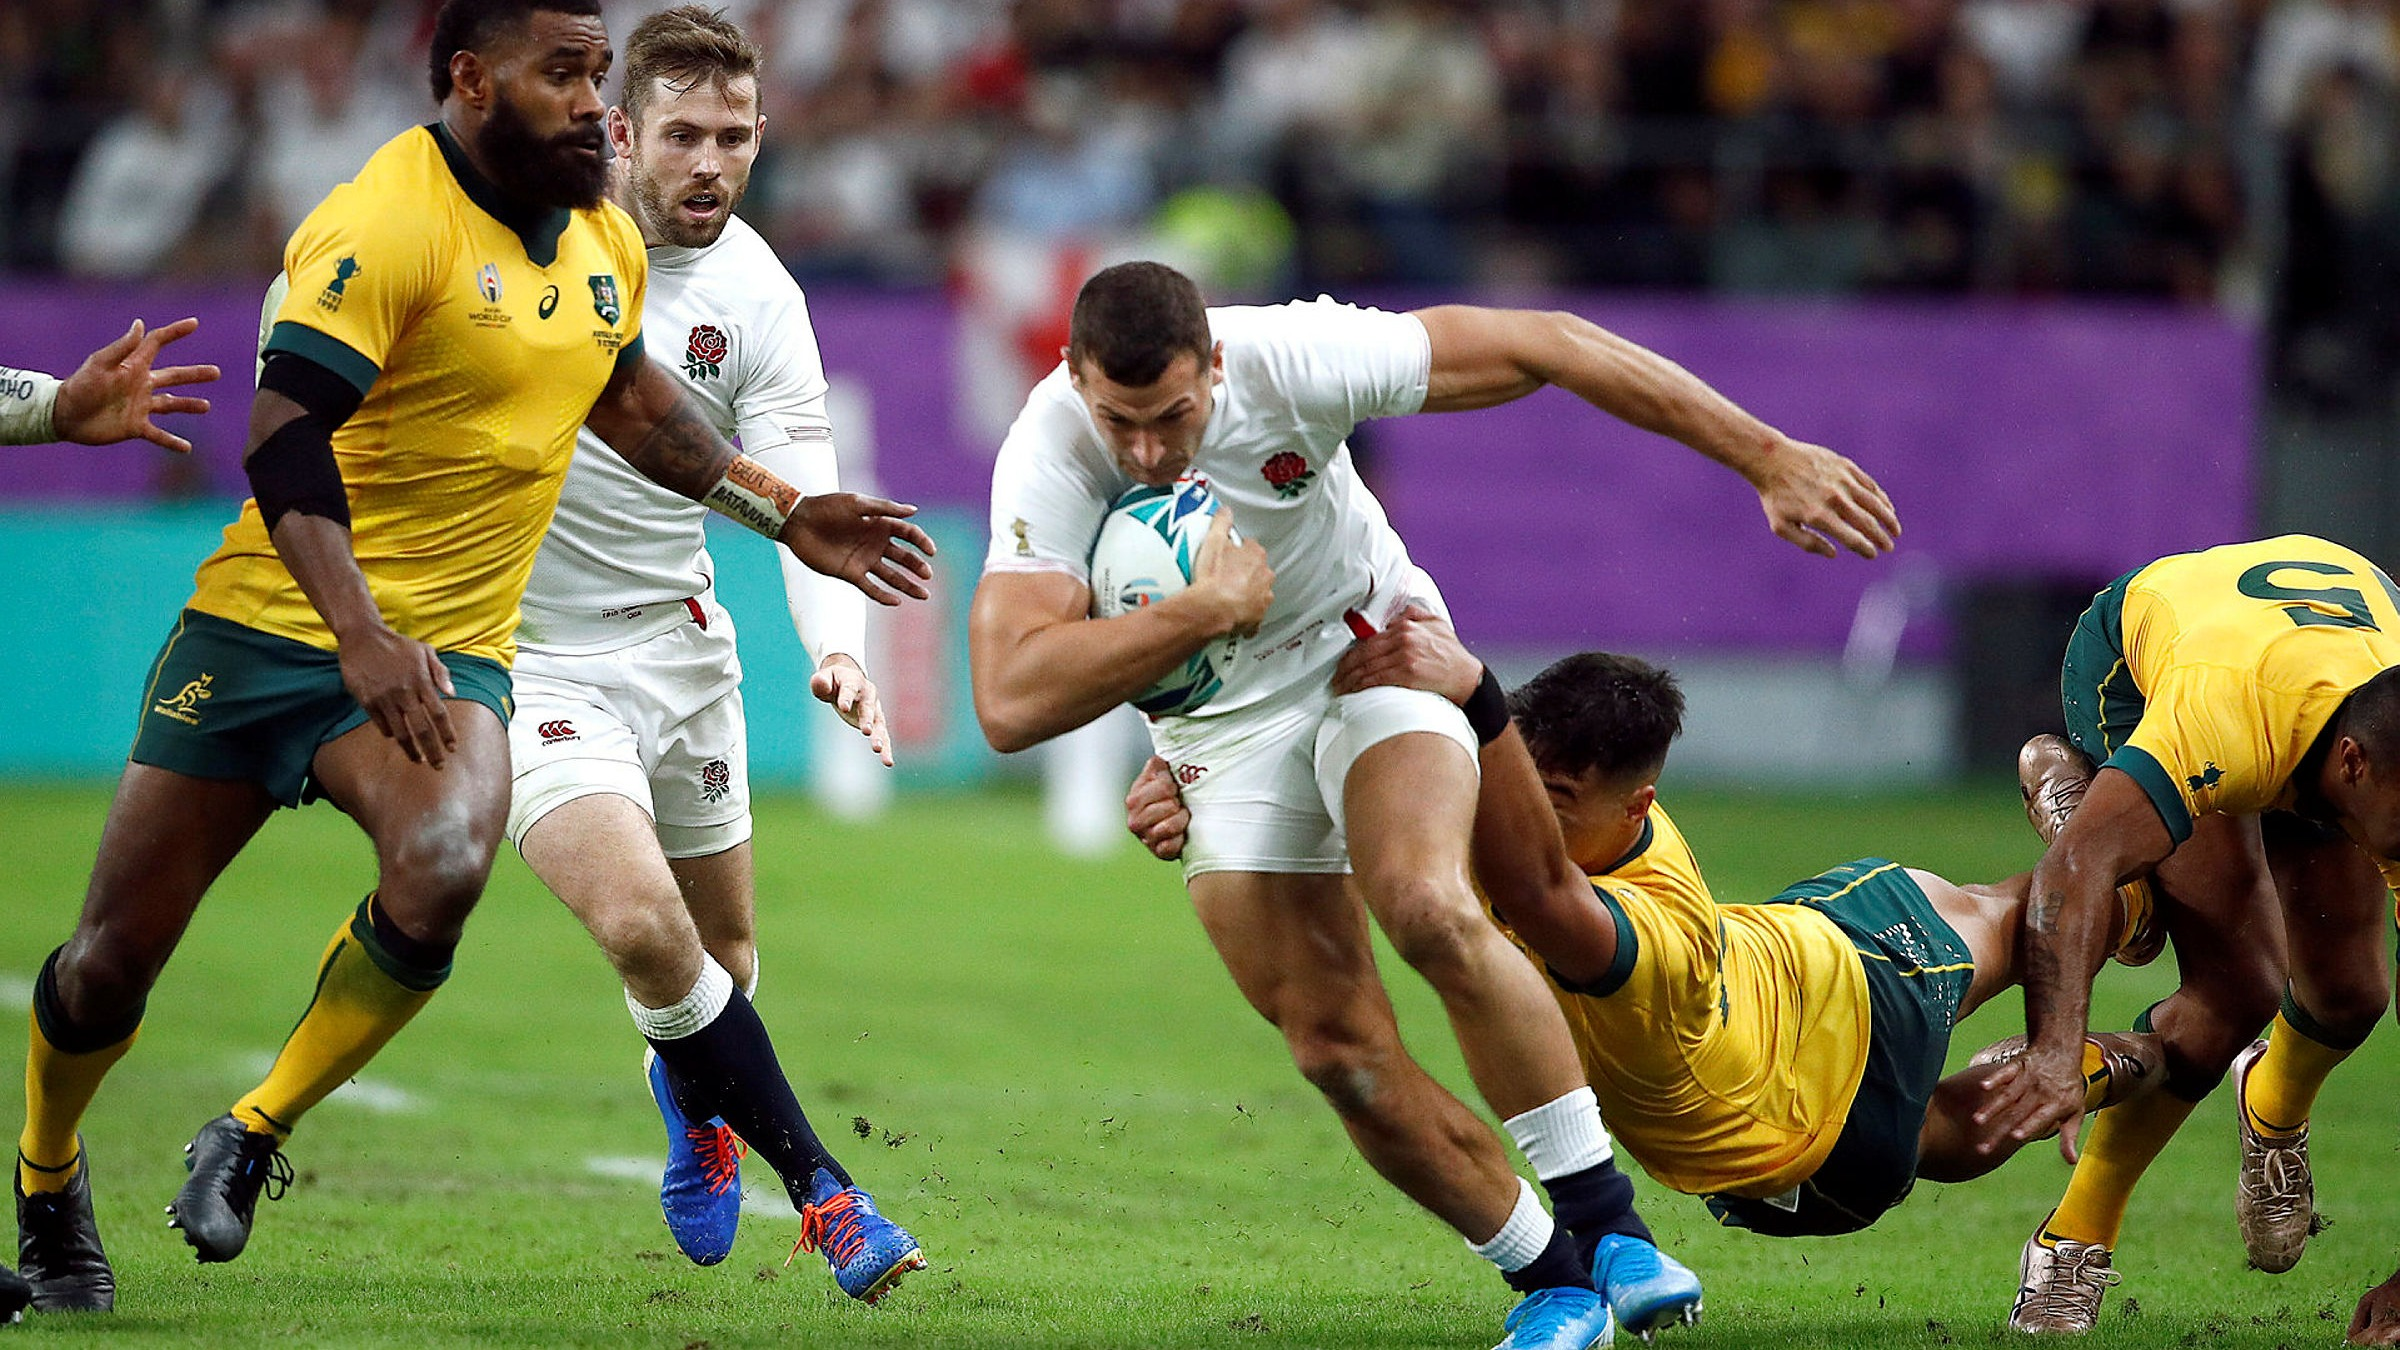 2020 end-of-year rugby union internationals